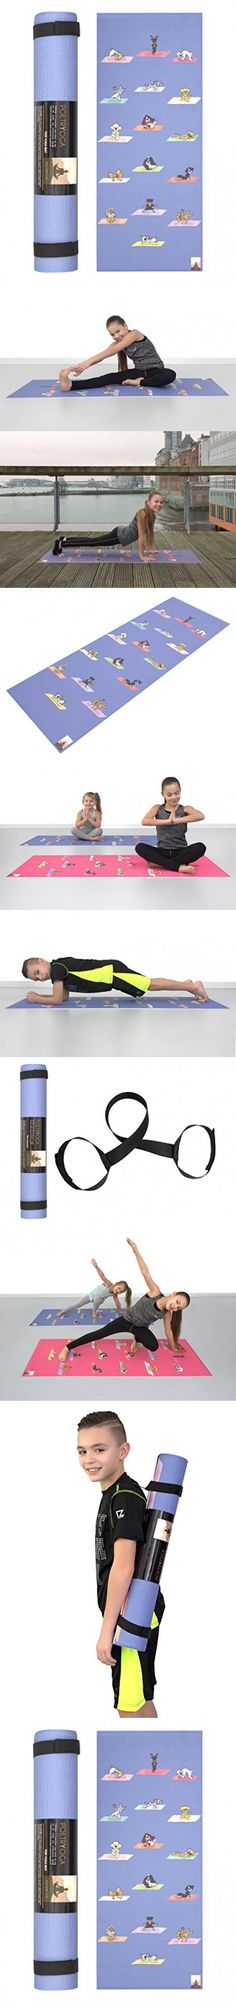 POETRYOGA - Kids Yoga Mat - with Carry Strap - 60x24 Inches 4mm - Eco-Friendly SGS Approved Non-Toxic No Phthalates or Latex - Durable - Non-Slip - Multi Purpose - Yoga Dogs Poses (Blue)